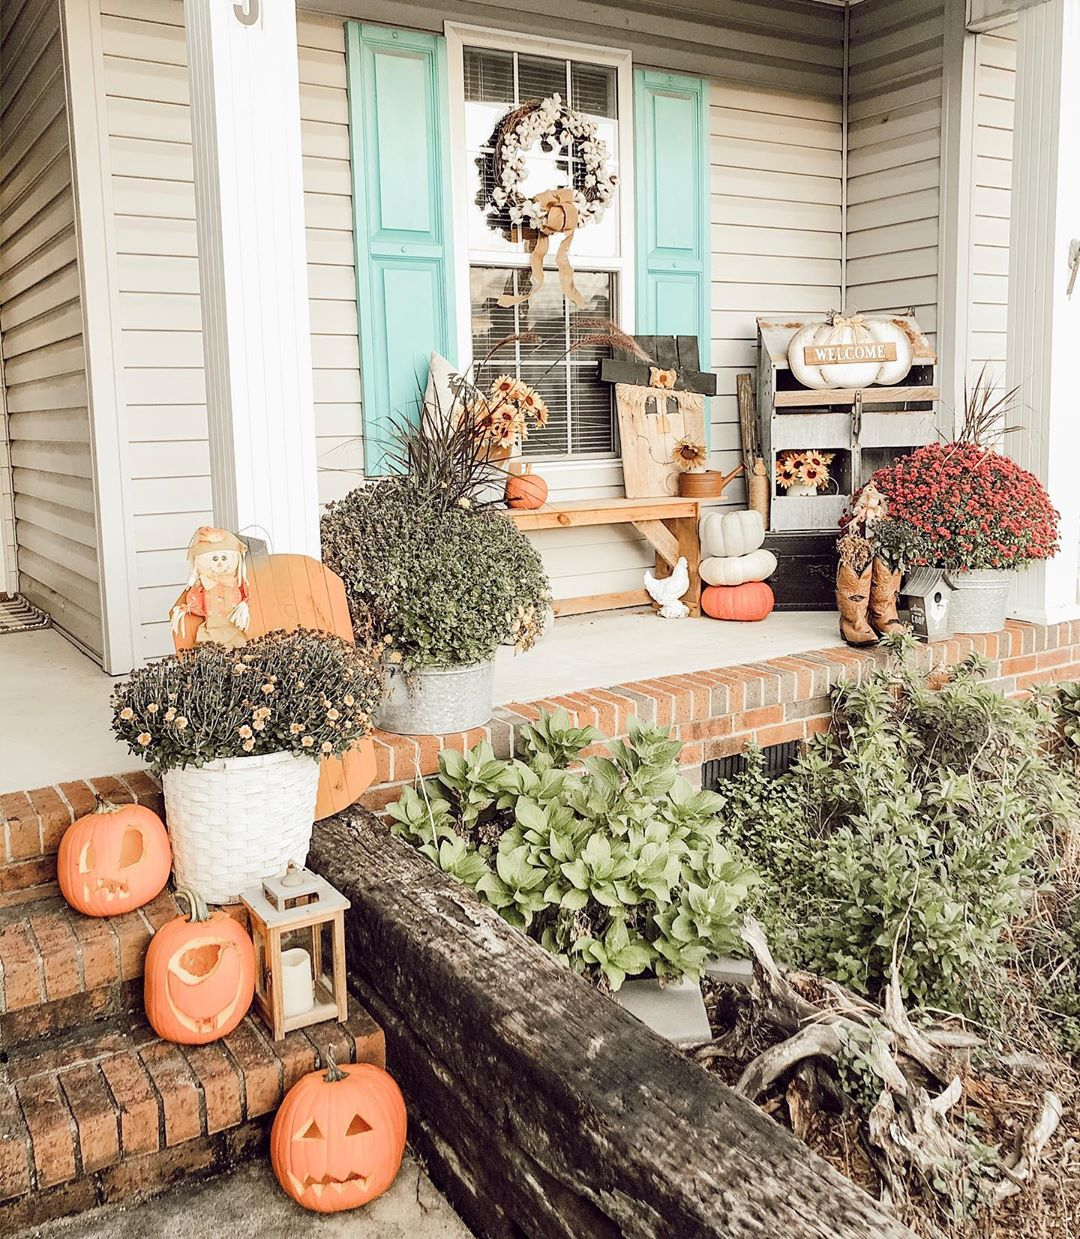 Perfect Fall Front Porch Decor Ideas for this Autumn! From spooky halloween decor to farmhouse inspired Fall decor. A lot of these are DIY friendly and work for all budgets! #FallDecor #FallFrontPorch #DIYFallDecor